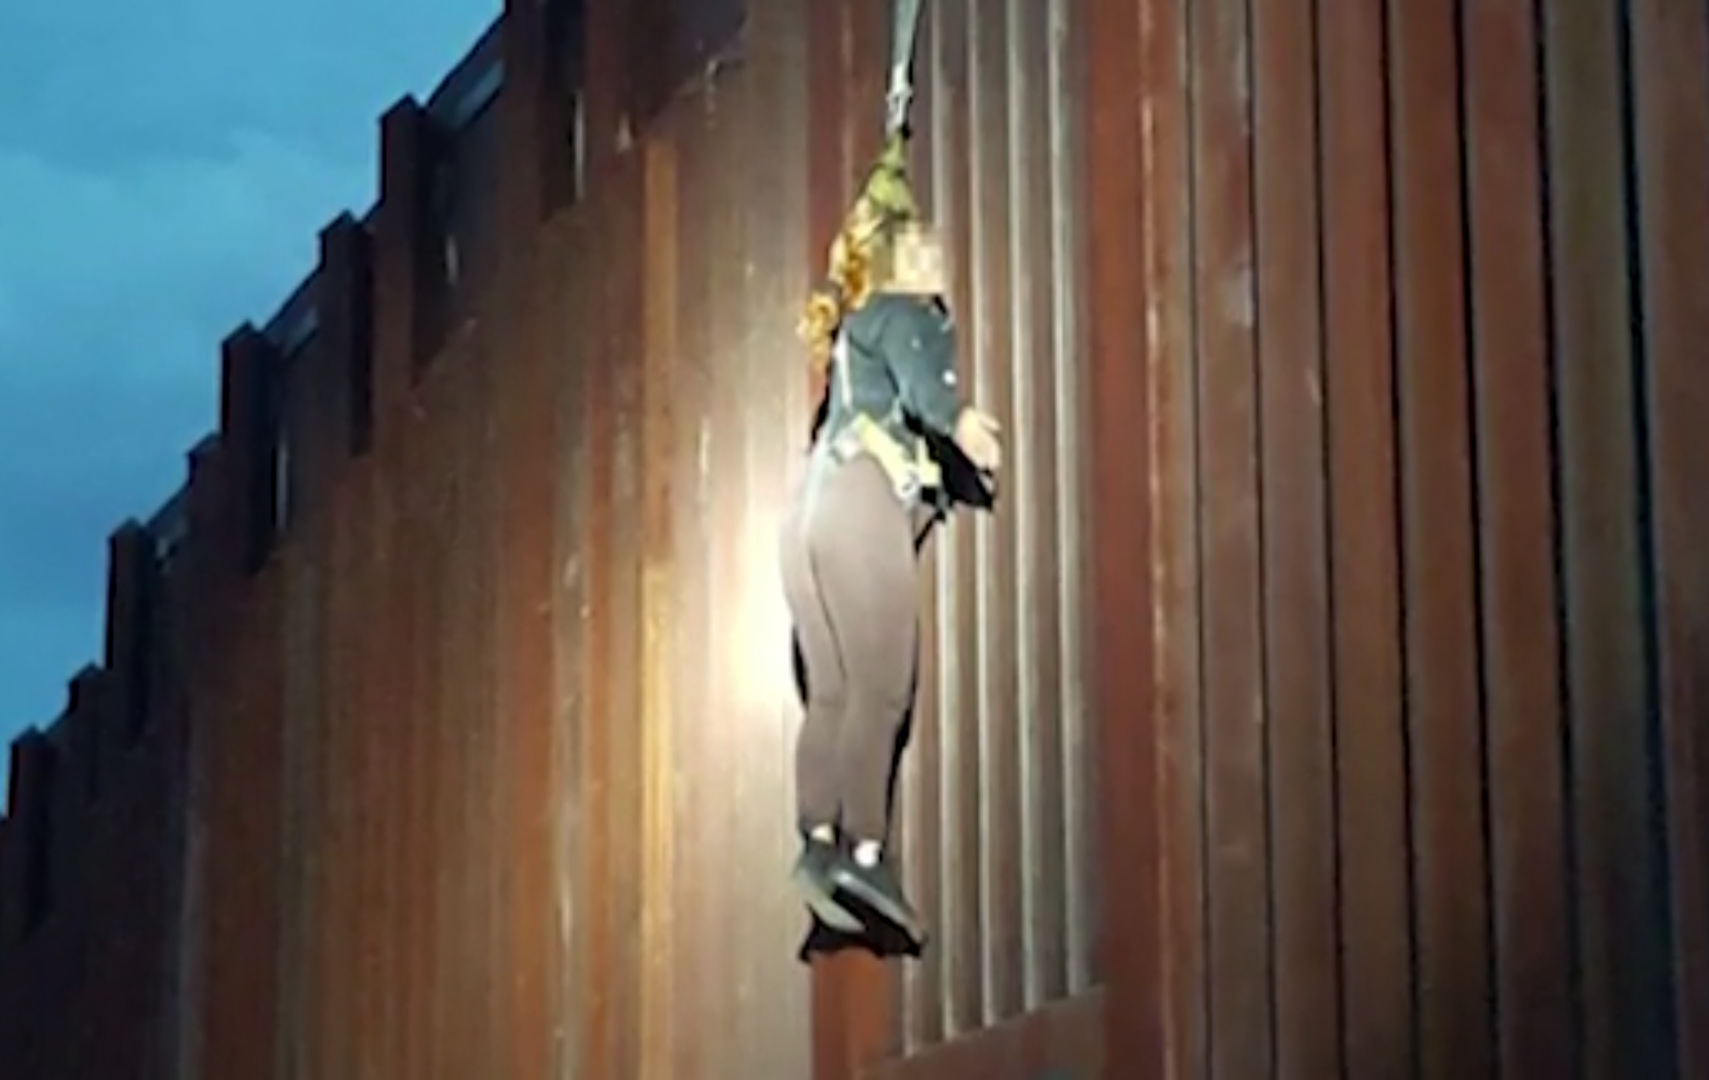 Smugglers attempting to cross Arizona's border with Mexico left a woman dangling from a fence, officials said. (Photo: CNN Newsource)